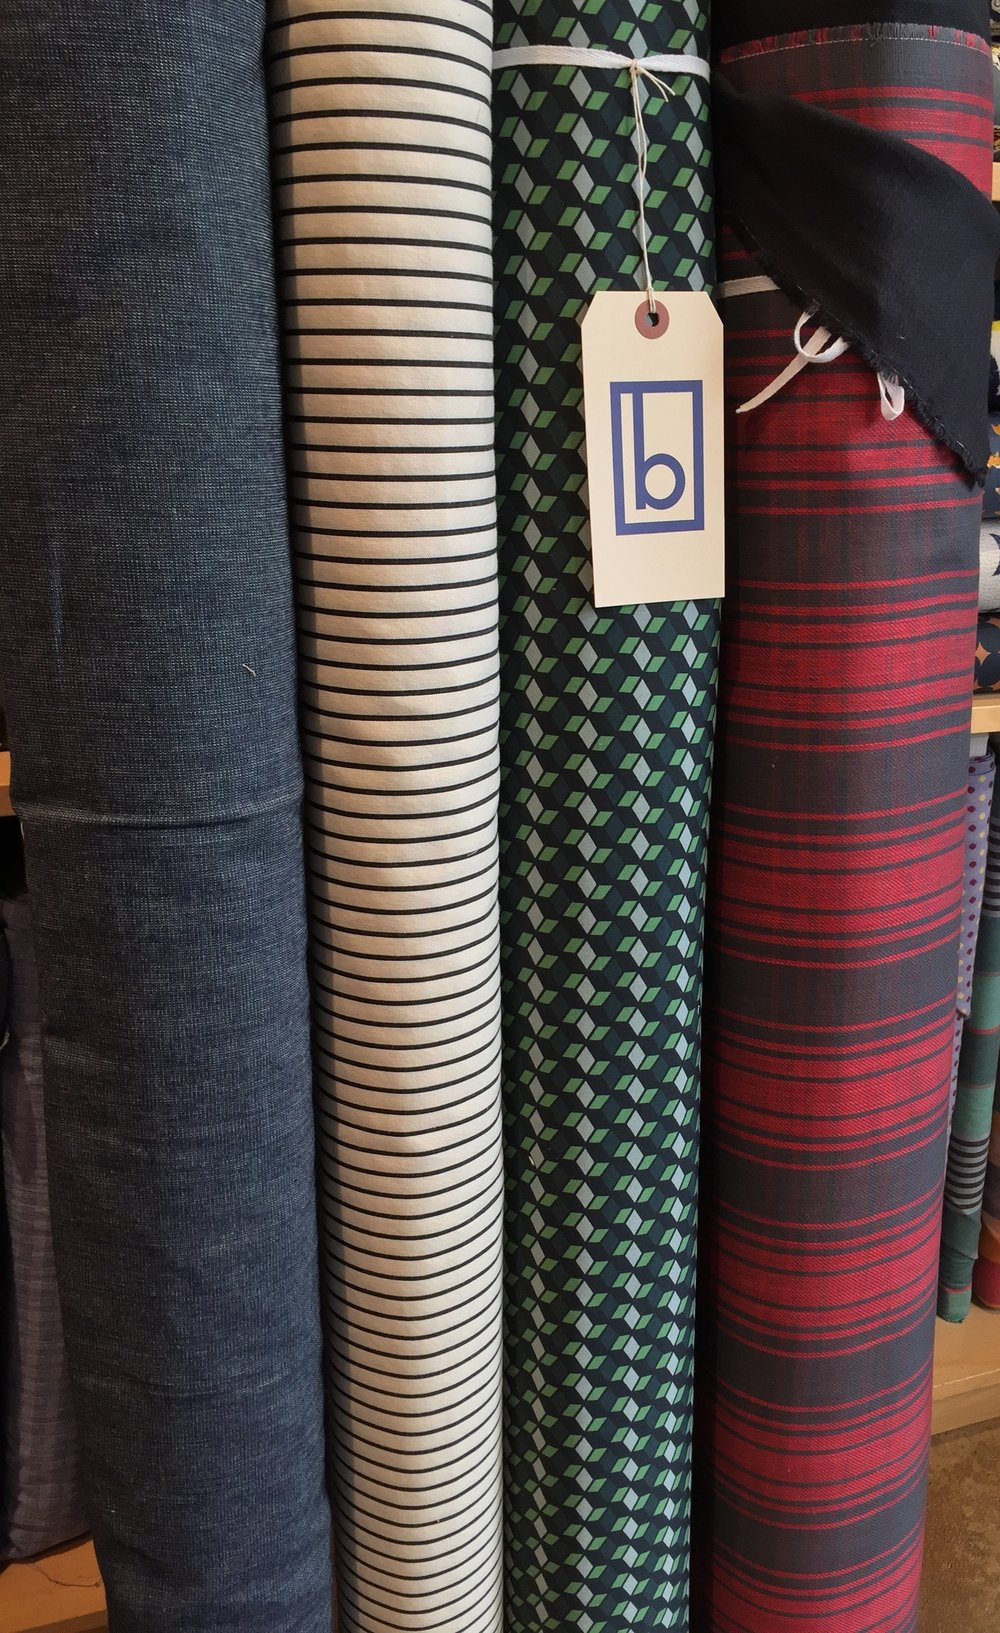 Interesting apparel goods! Plain weave cotton denim, mid weight cotton stripe, cotton/spandex bottom weight with 3D block design, and double sided cotton plaid.